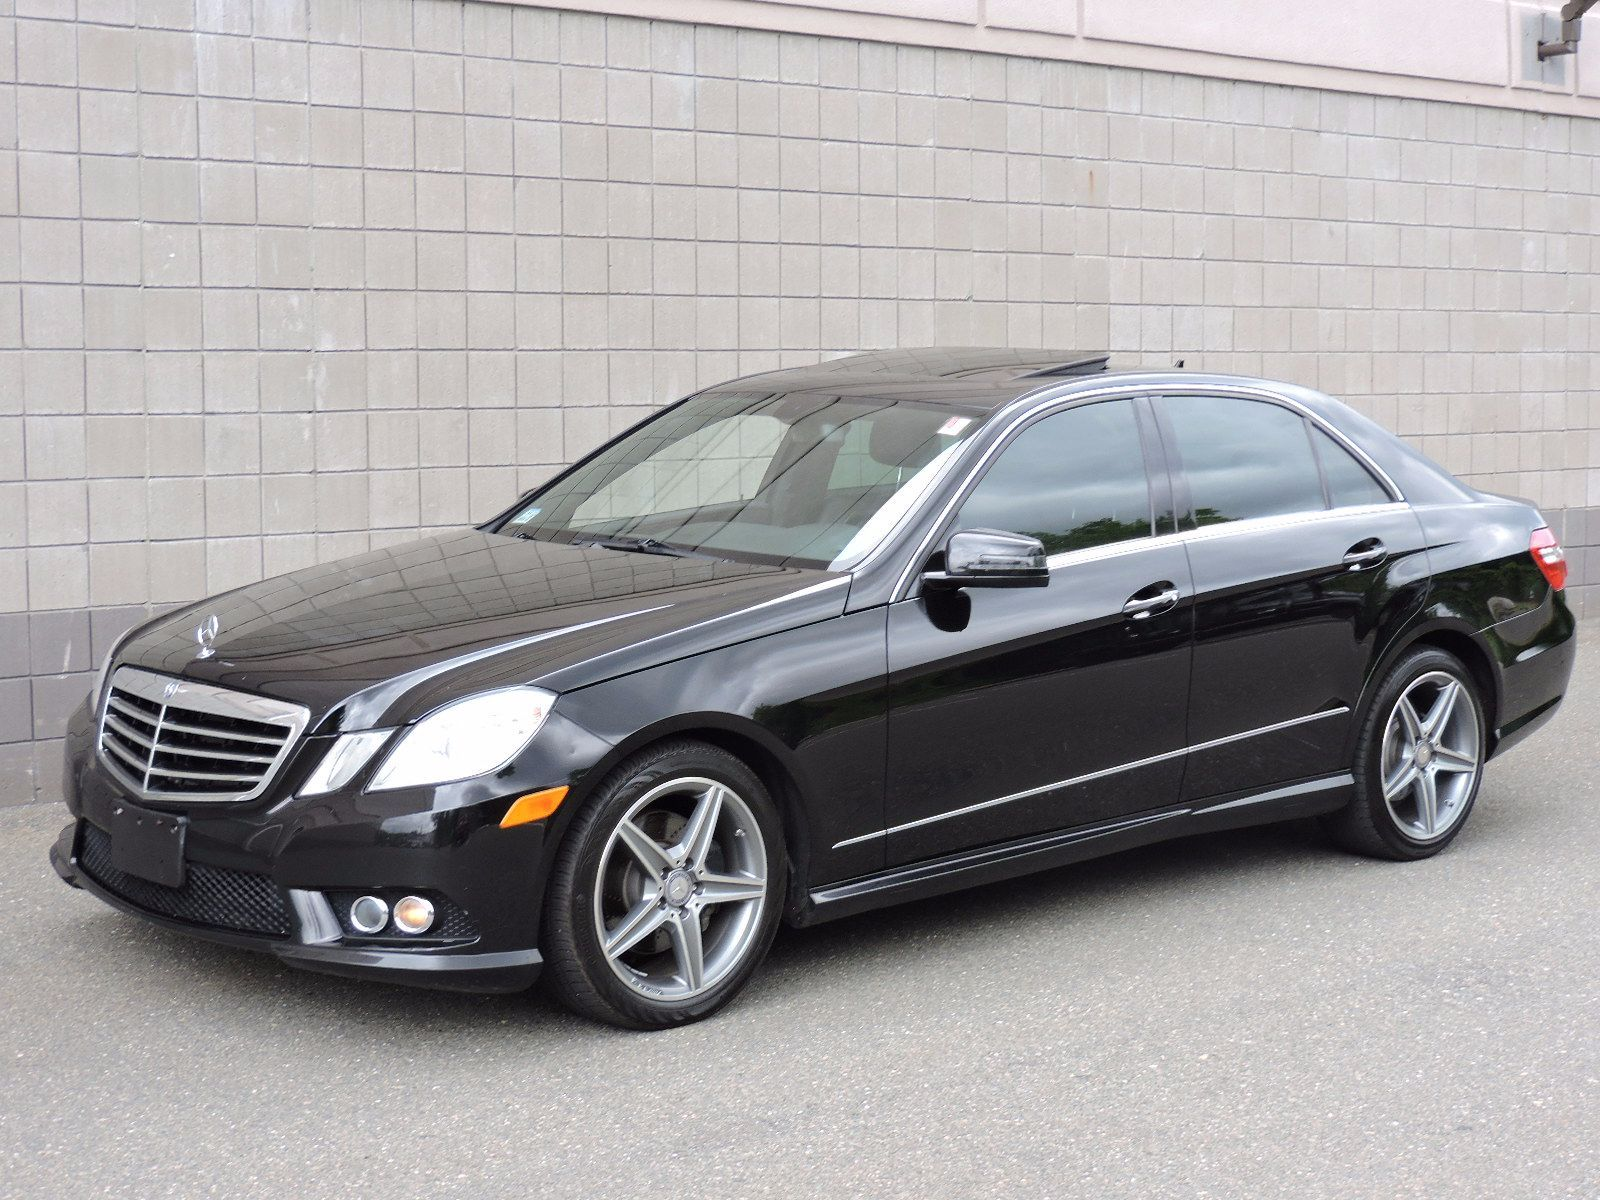 Used 2010 mercedes benz e class e350 sport at saugus auto mall for 2010 mercedes benz e class e350 price